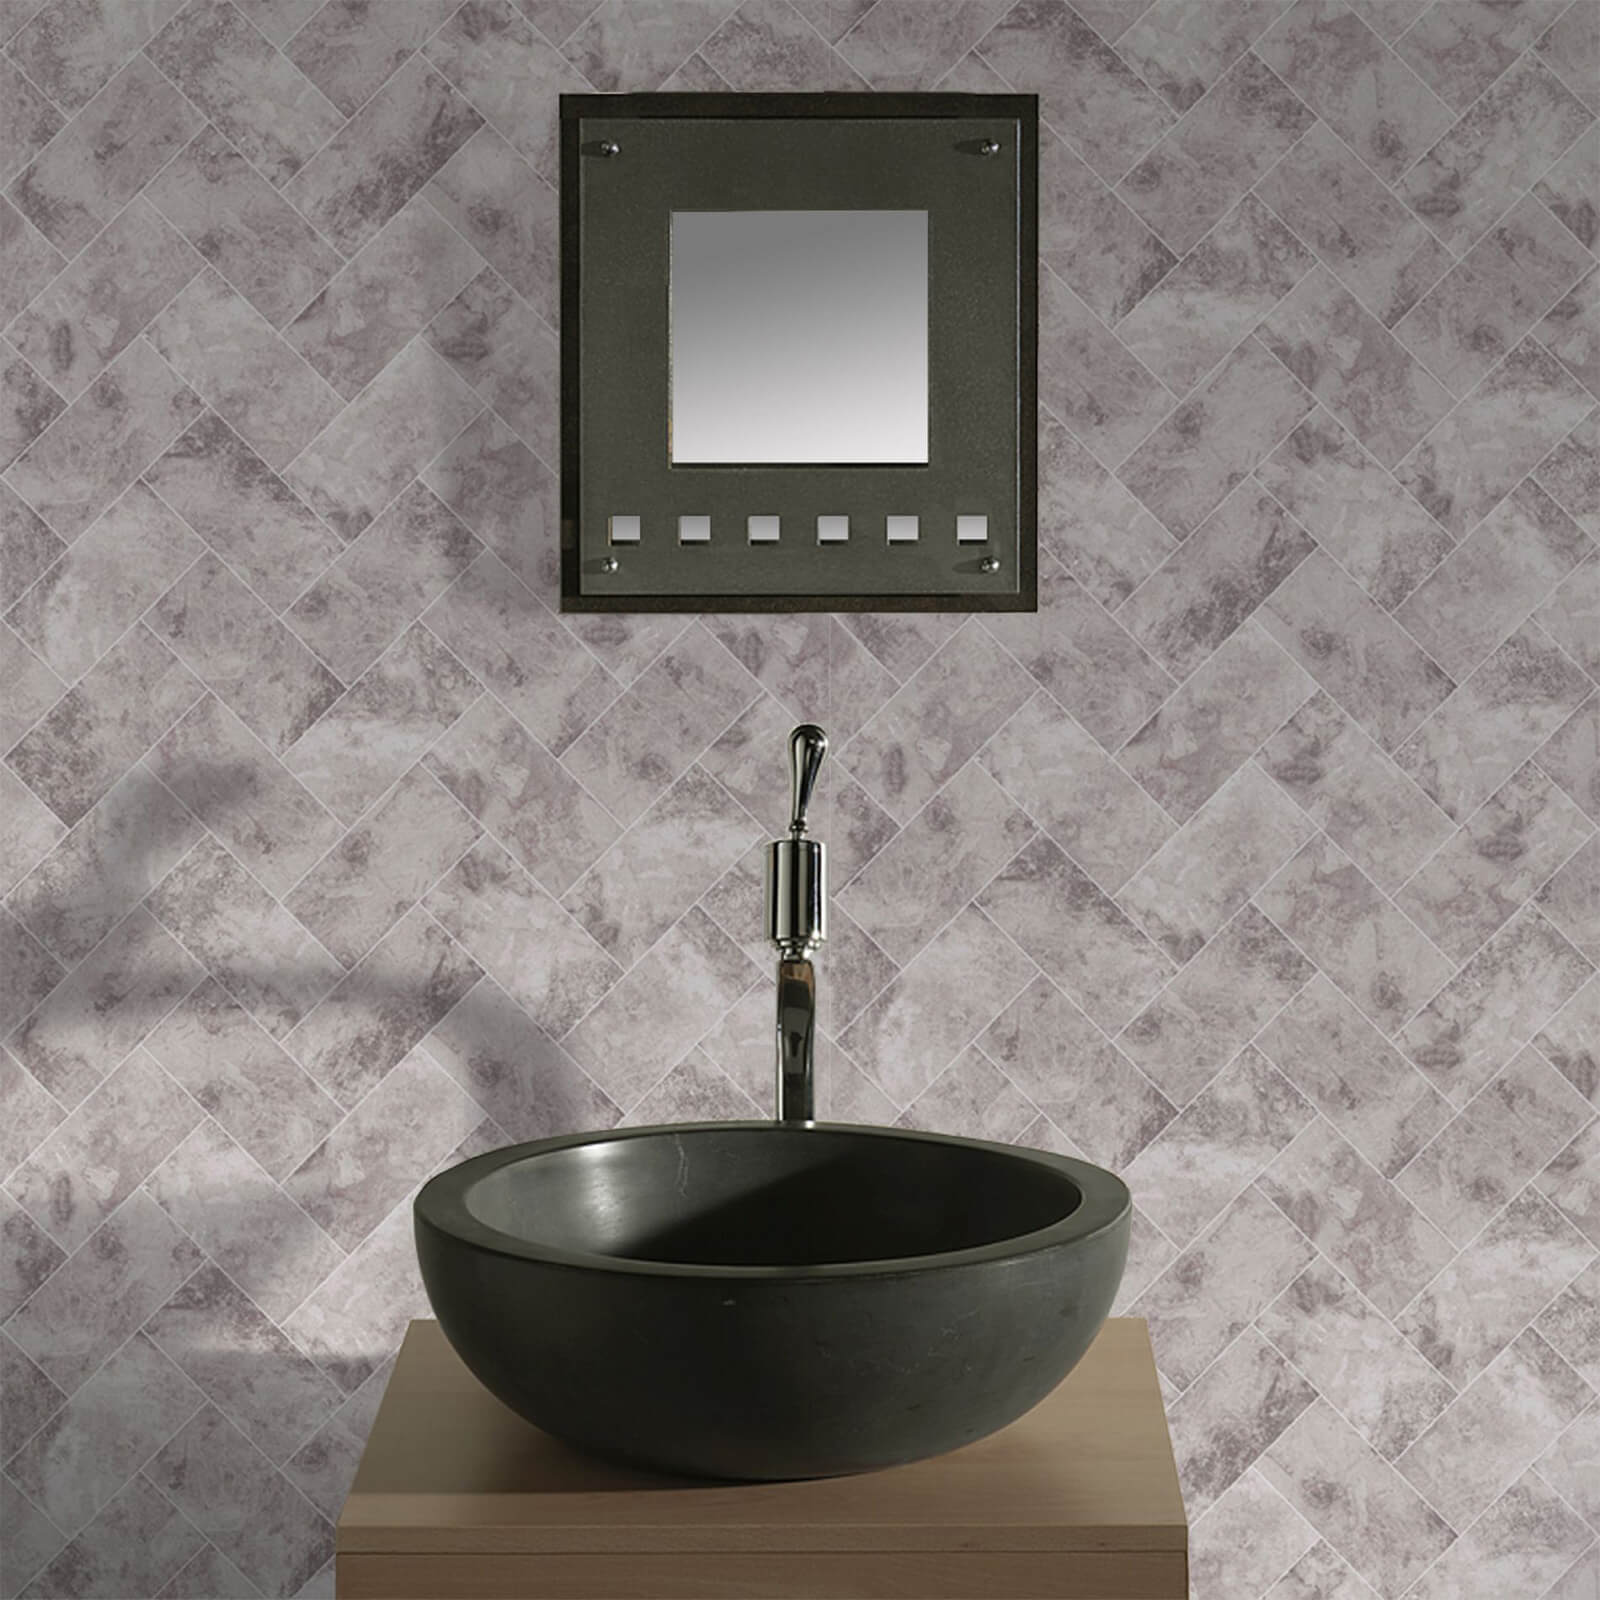 Contour Taupe Travertino Tiled Bathroom/Kitchen Wallpaper